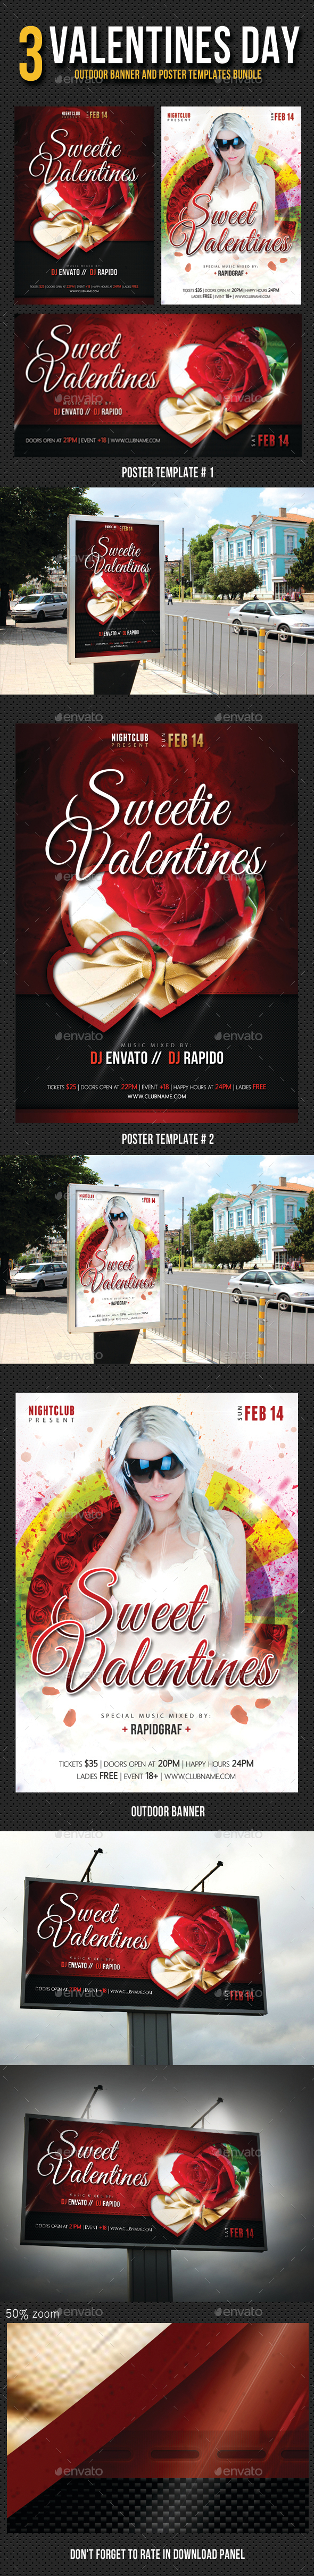 3 in 1 Valentines Day Posters and Banner Bundle - Signage Print Templates